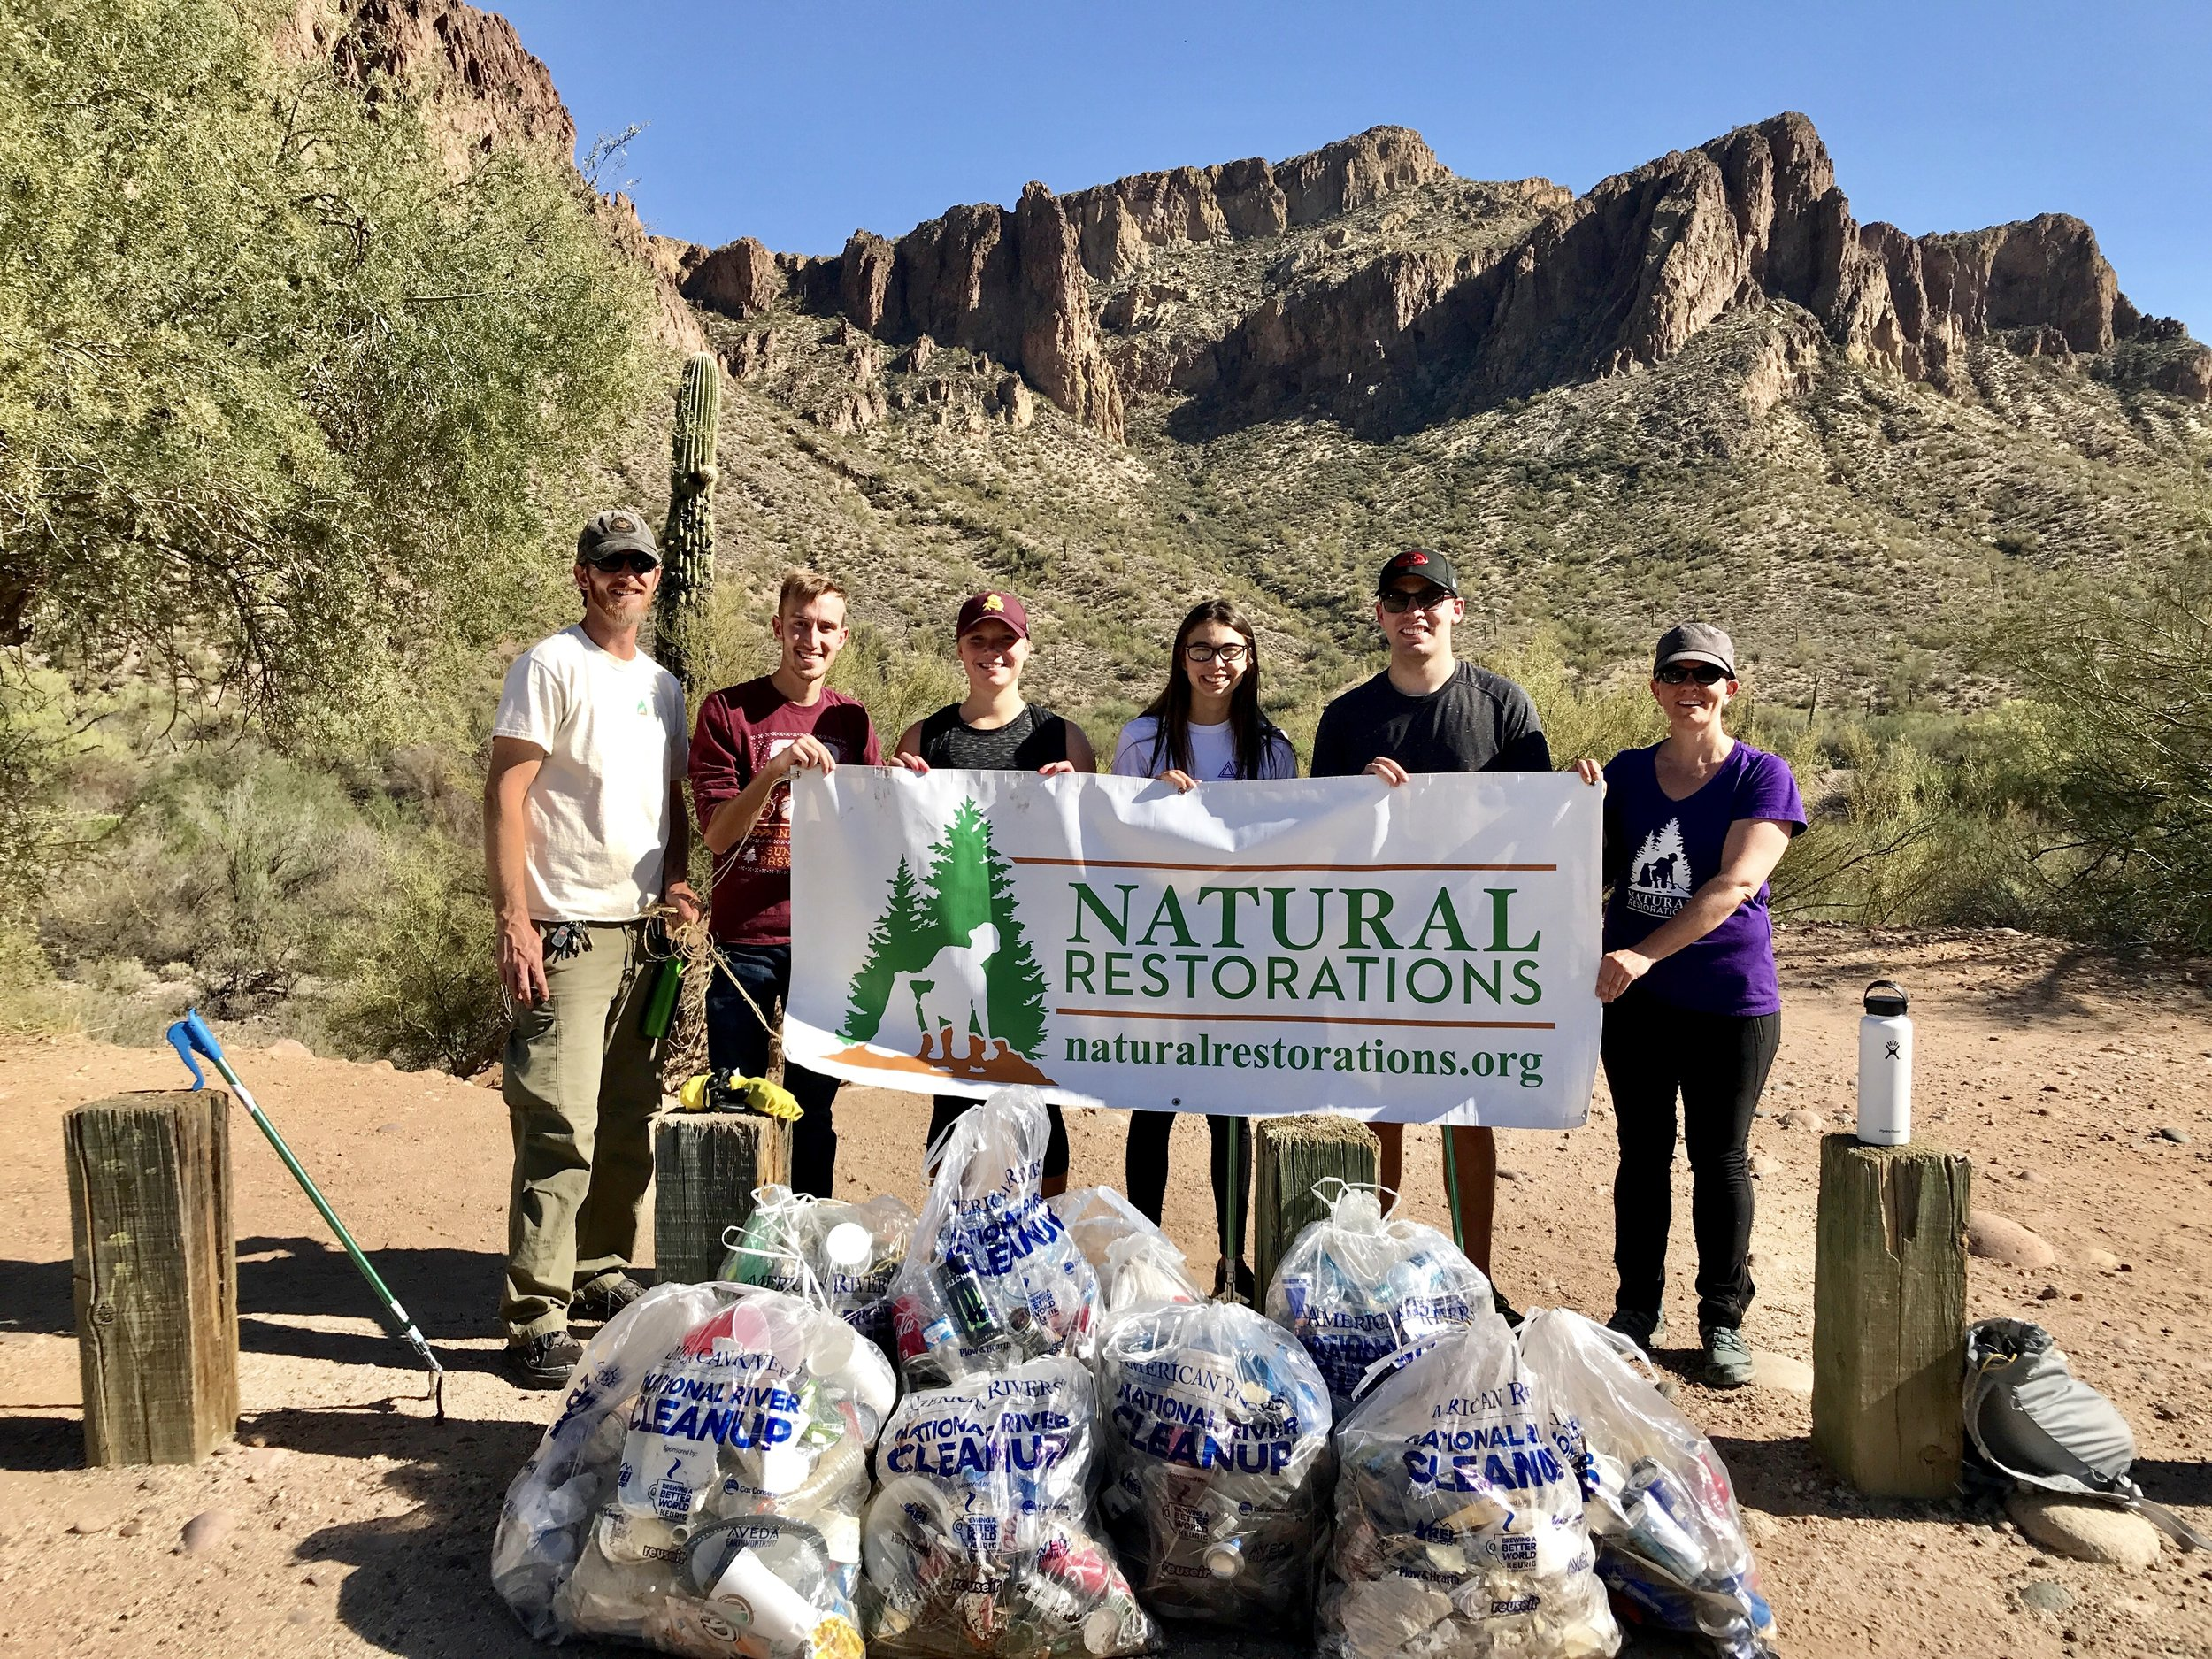 03/30/18 - Lower Salt River Cleanup at Water Users Recreation Area with ASU's Delta Sigma Pi.Click HERE to view the entire restoration.